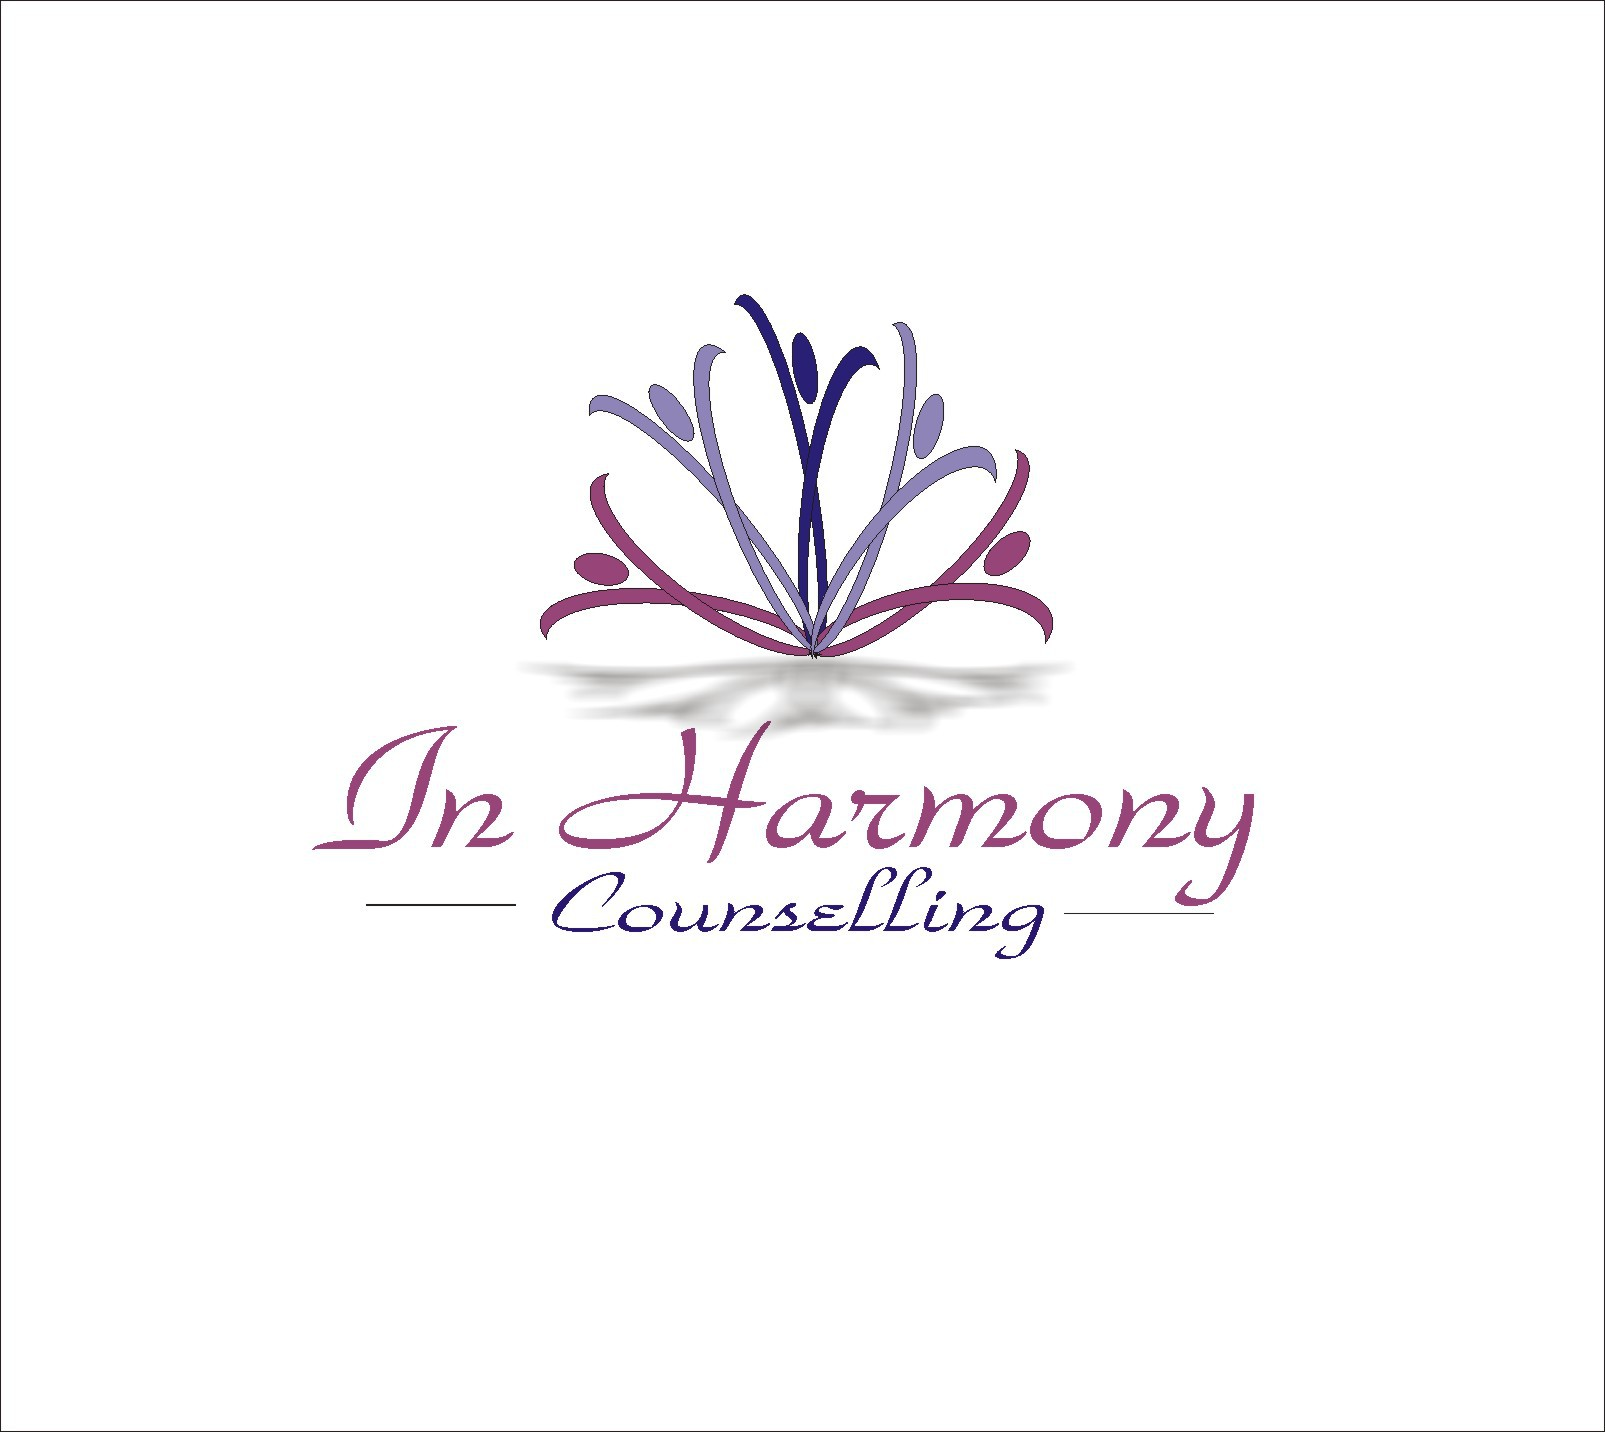 Help In Harmony Counselling with a new logo